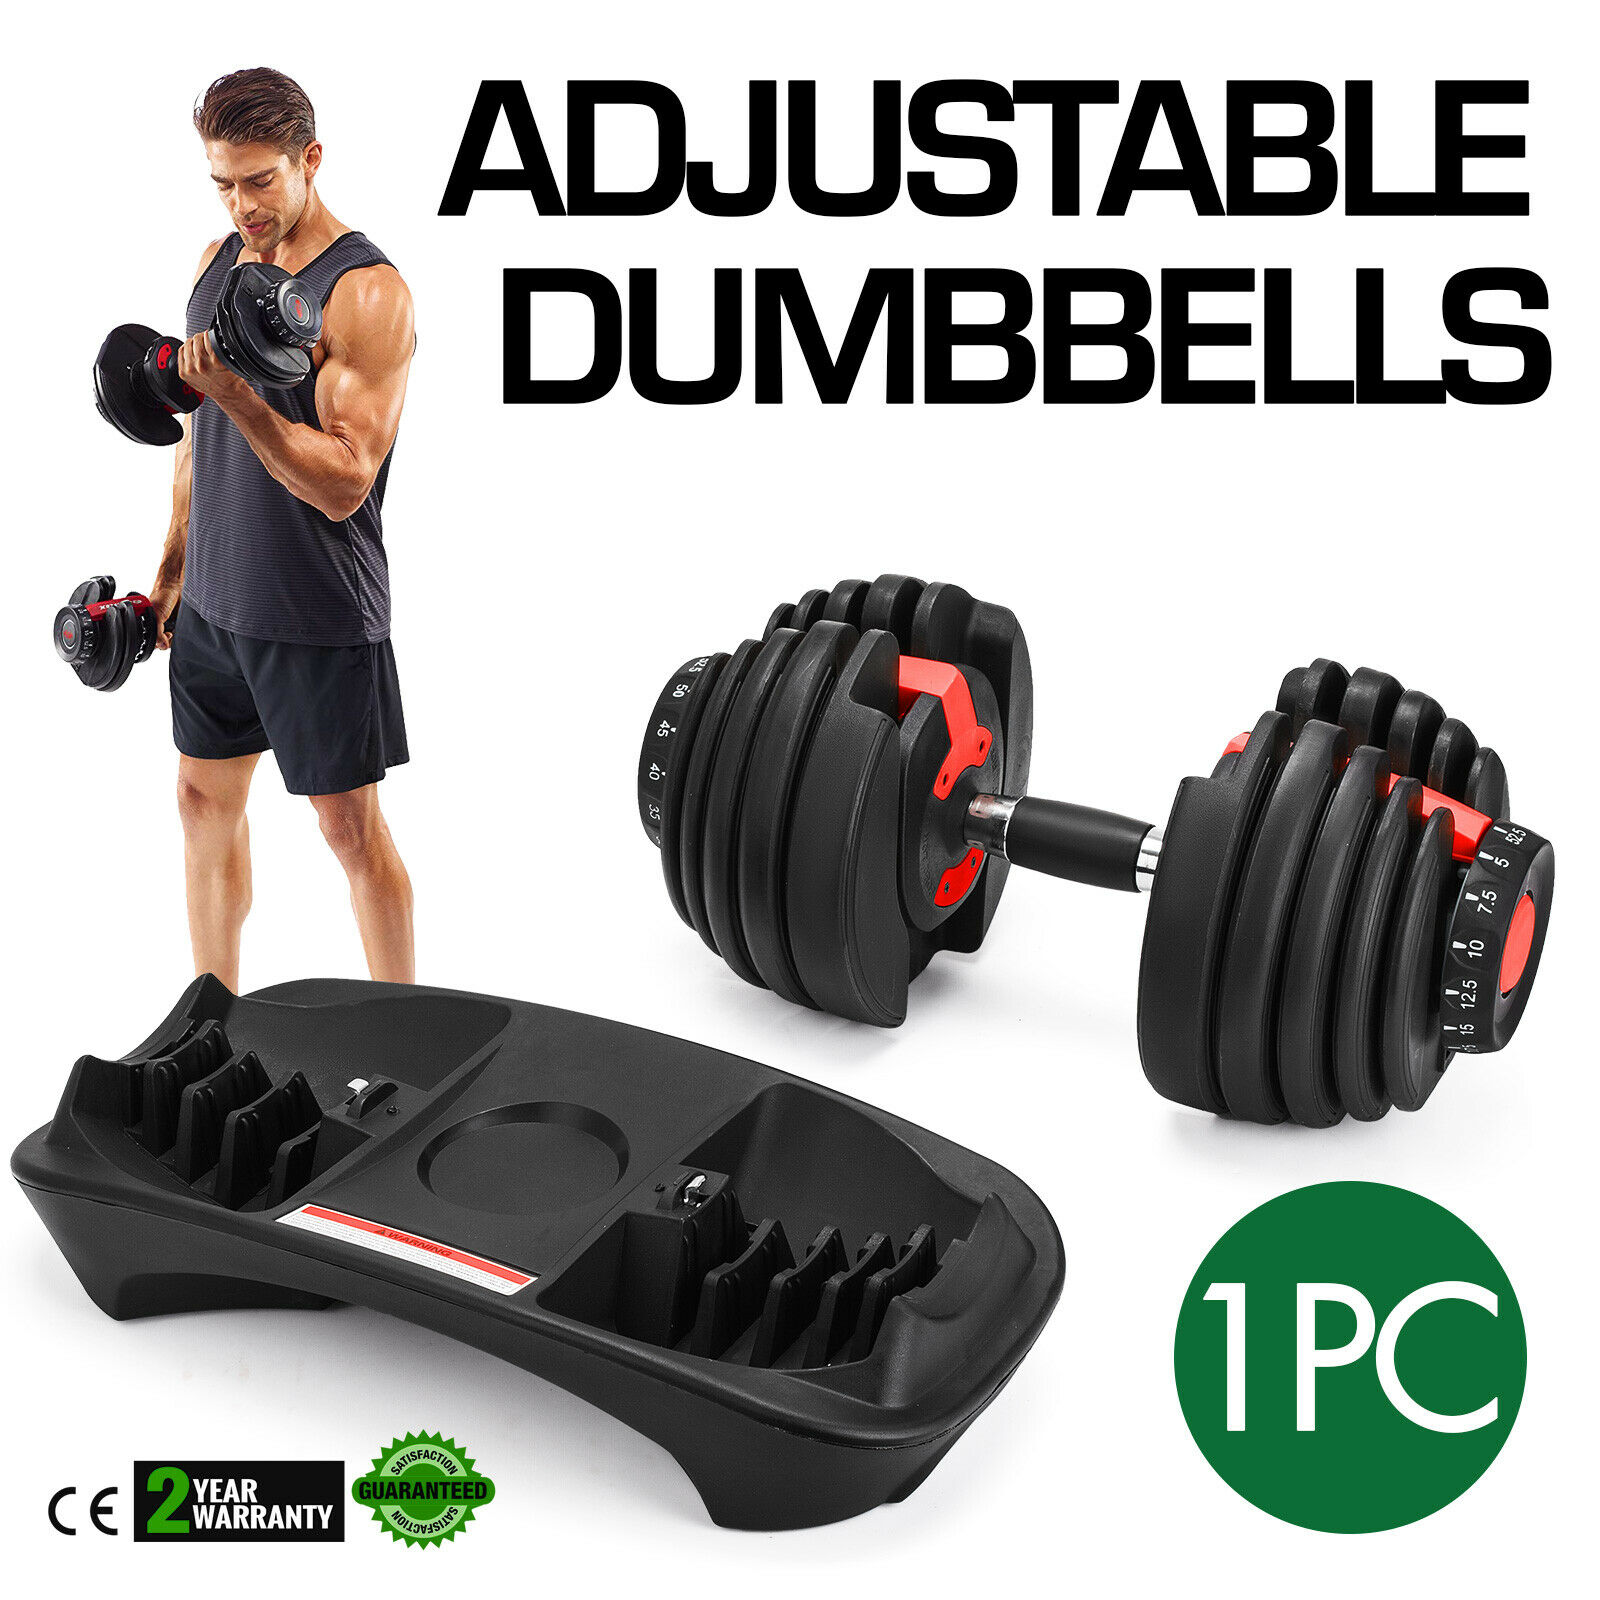 52.5LBS Adjustable Dumbbell  Fitness Dumbbell Standard Home Gym System- Building Muscle